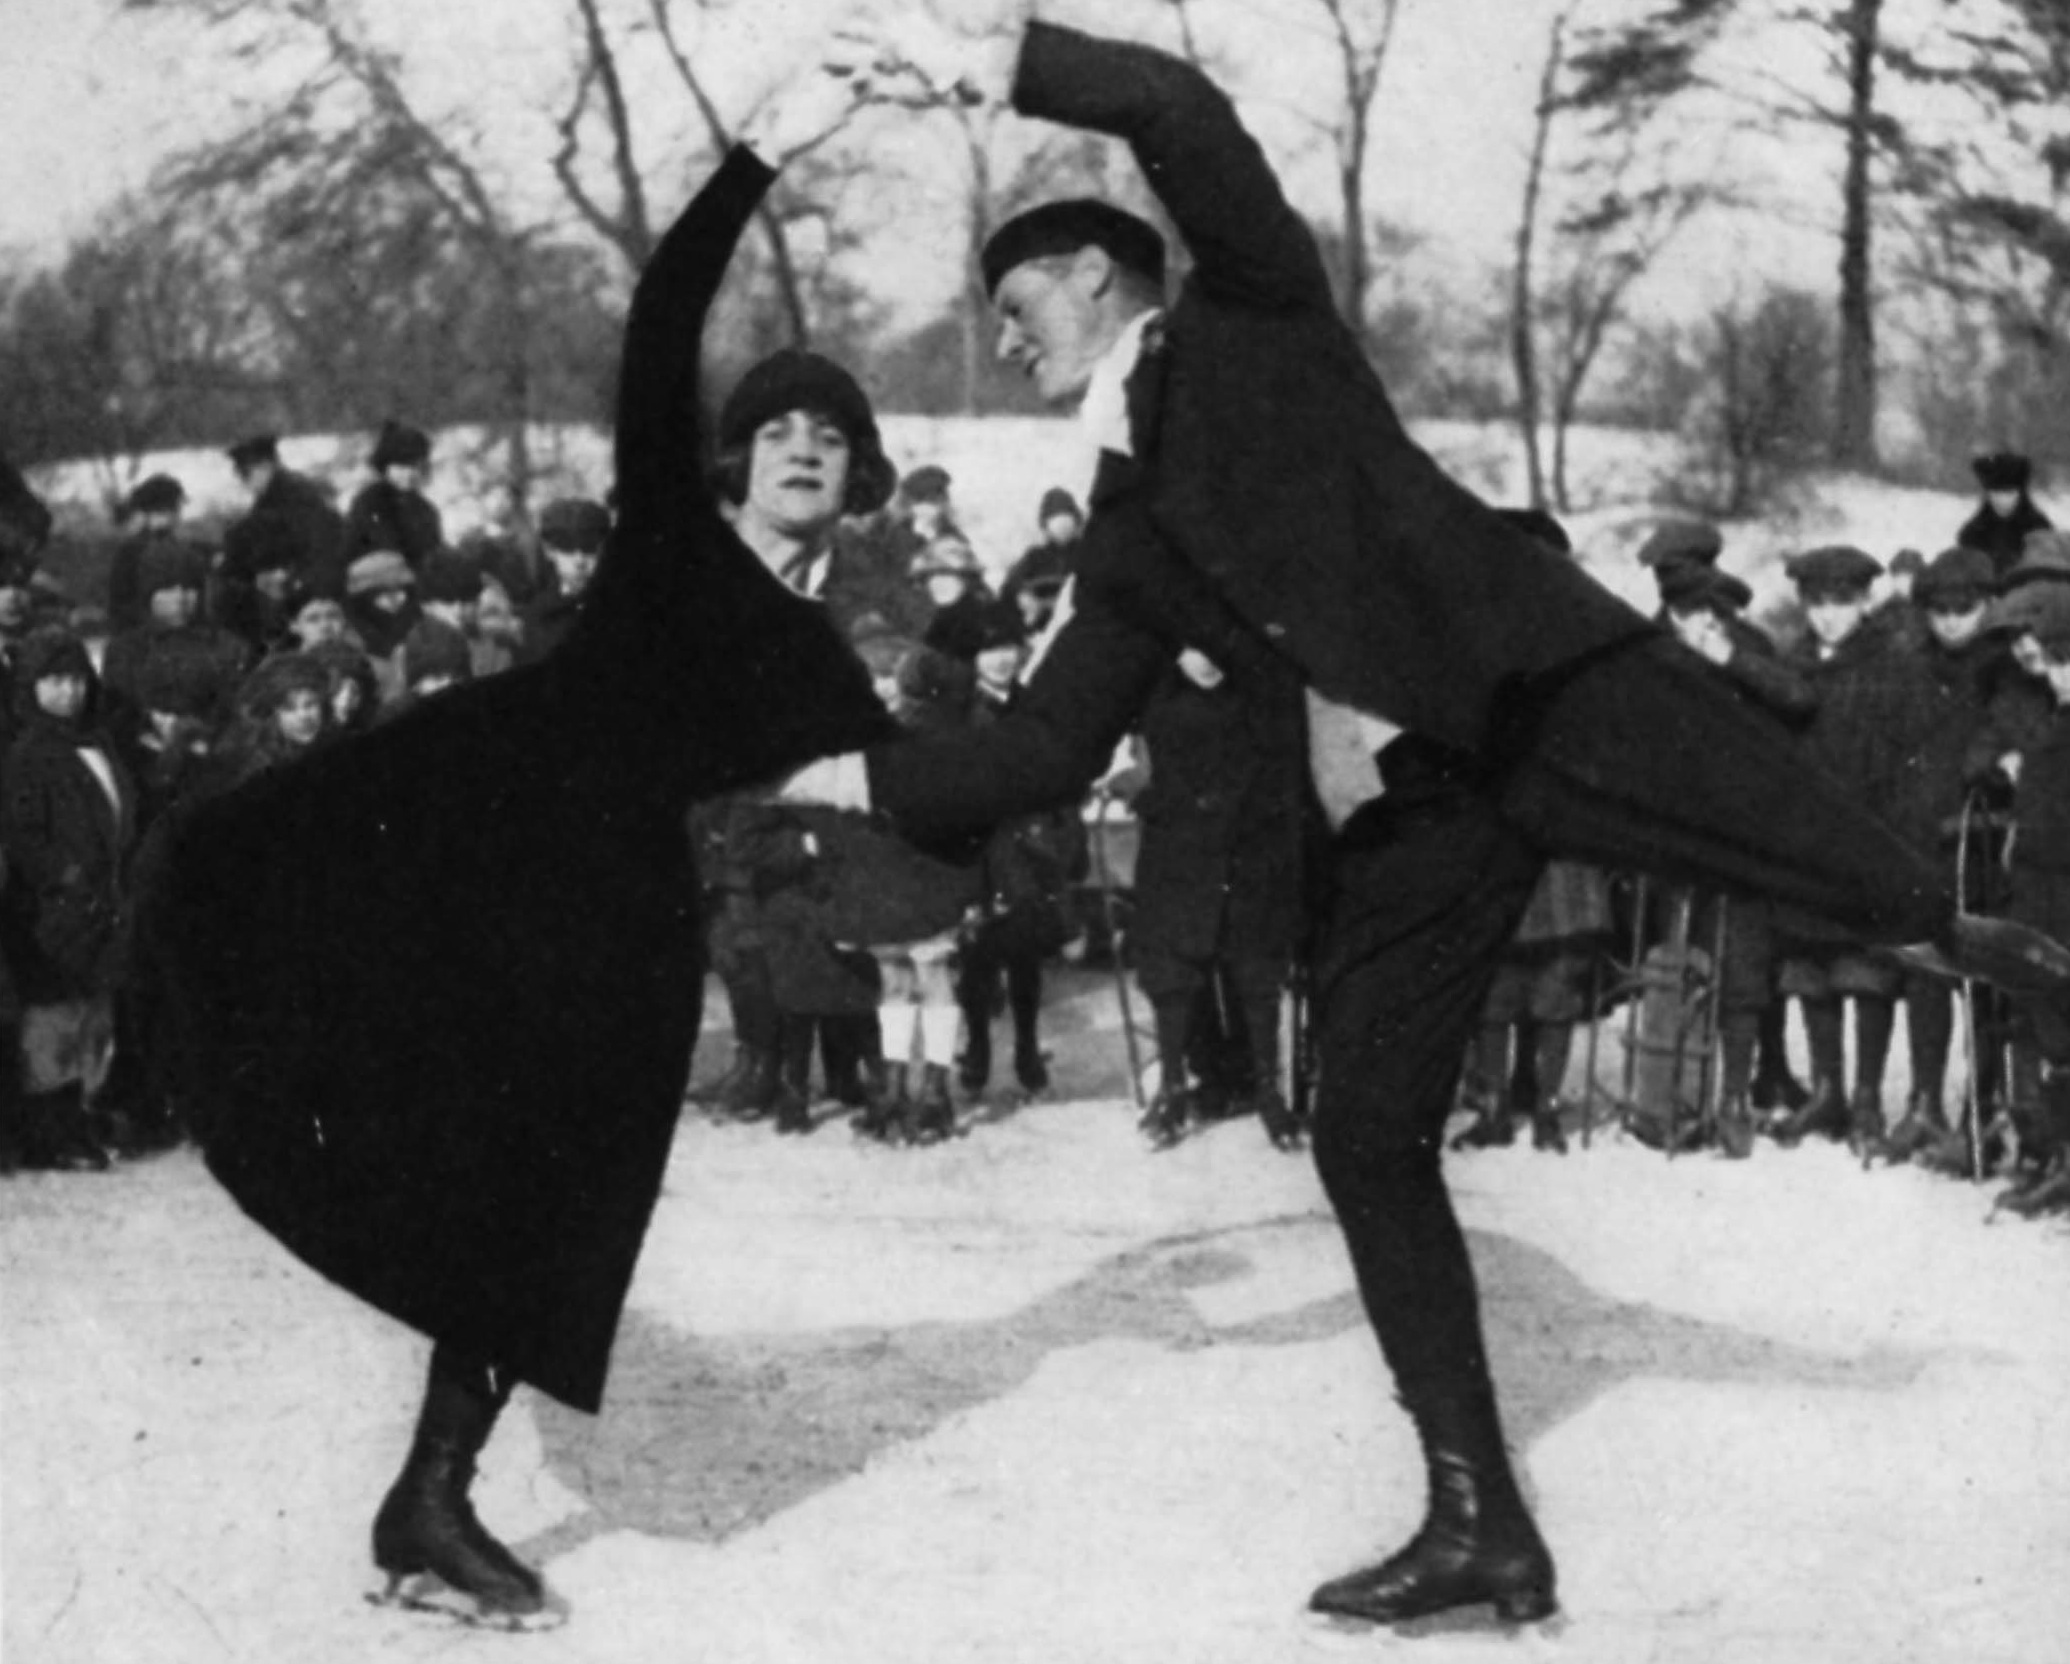 The face of NYC figure skating during the early 20th century, Irving Brokaw and Gertrude Porter Cheever won gold for their 10-Step at the 1920 Nationals.